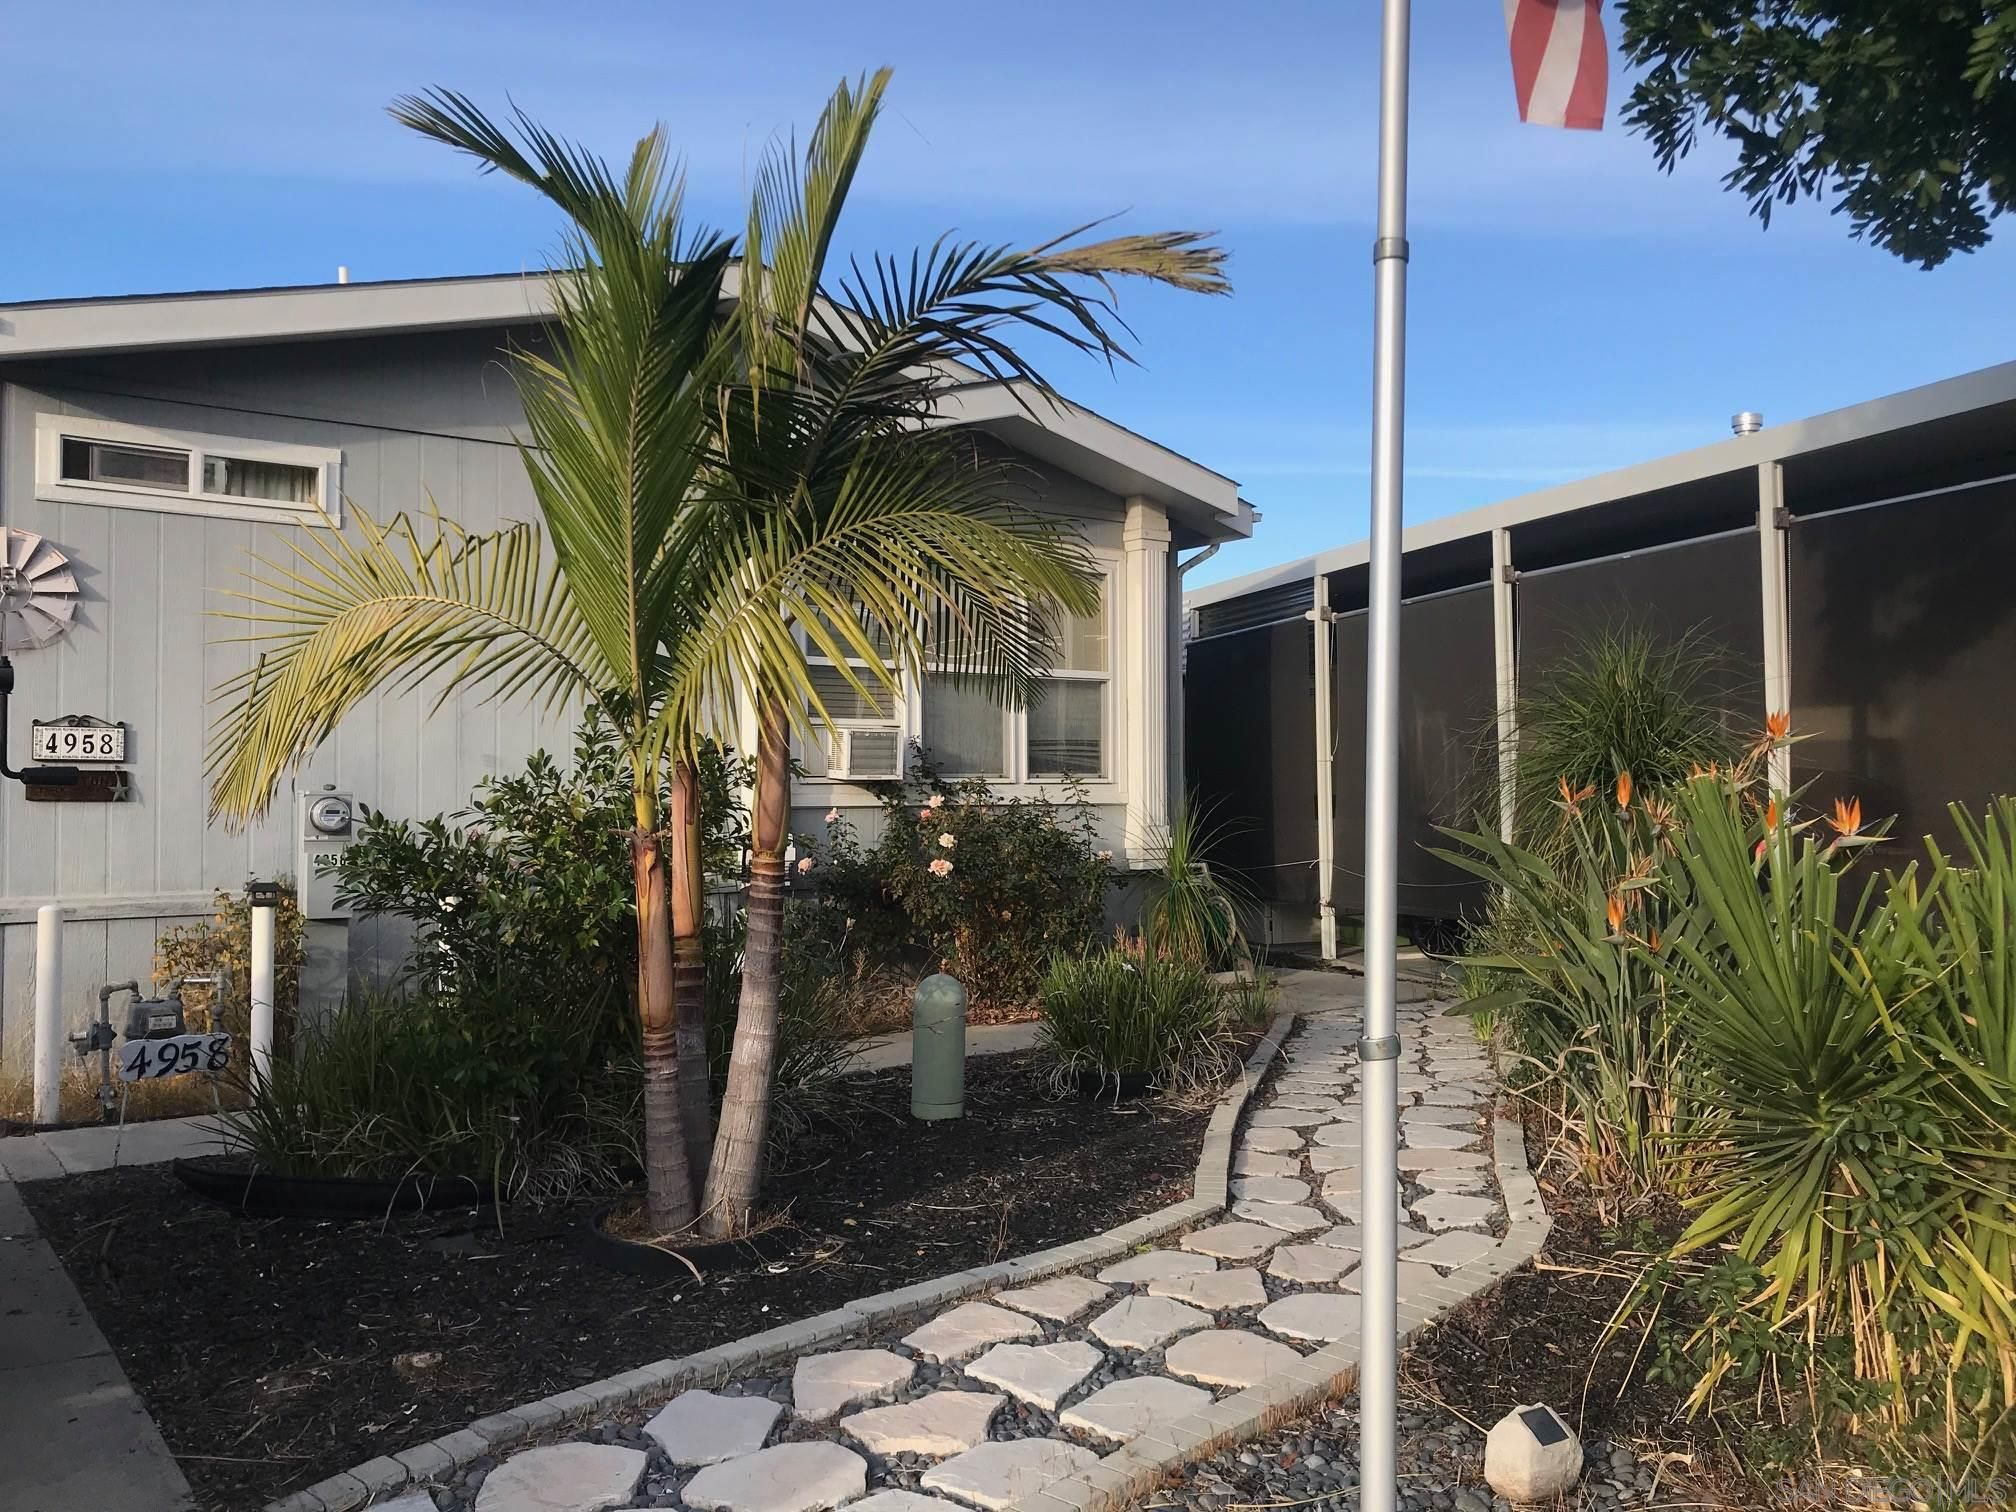 Main Photo: SAN DIEGO Manufactured Home for sale : 3 bedrooms : 4958 Old Cliffs Rd #4958